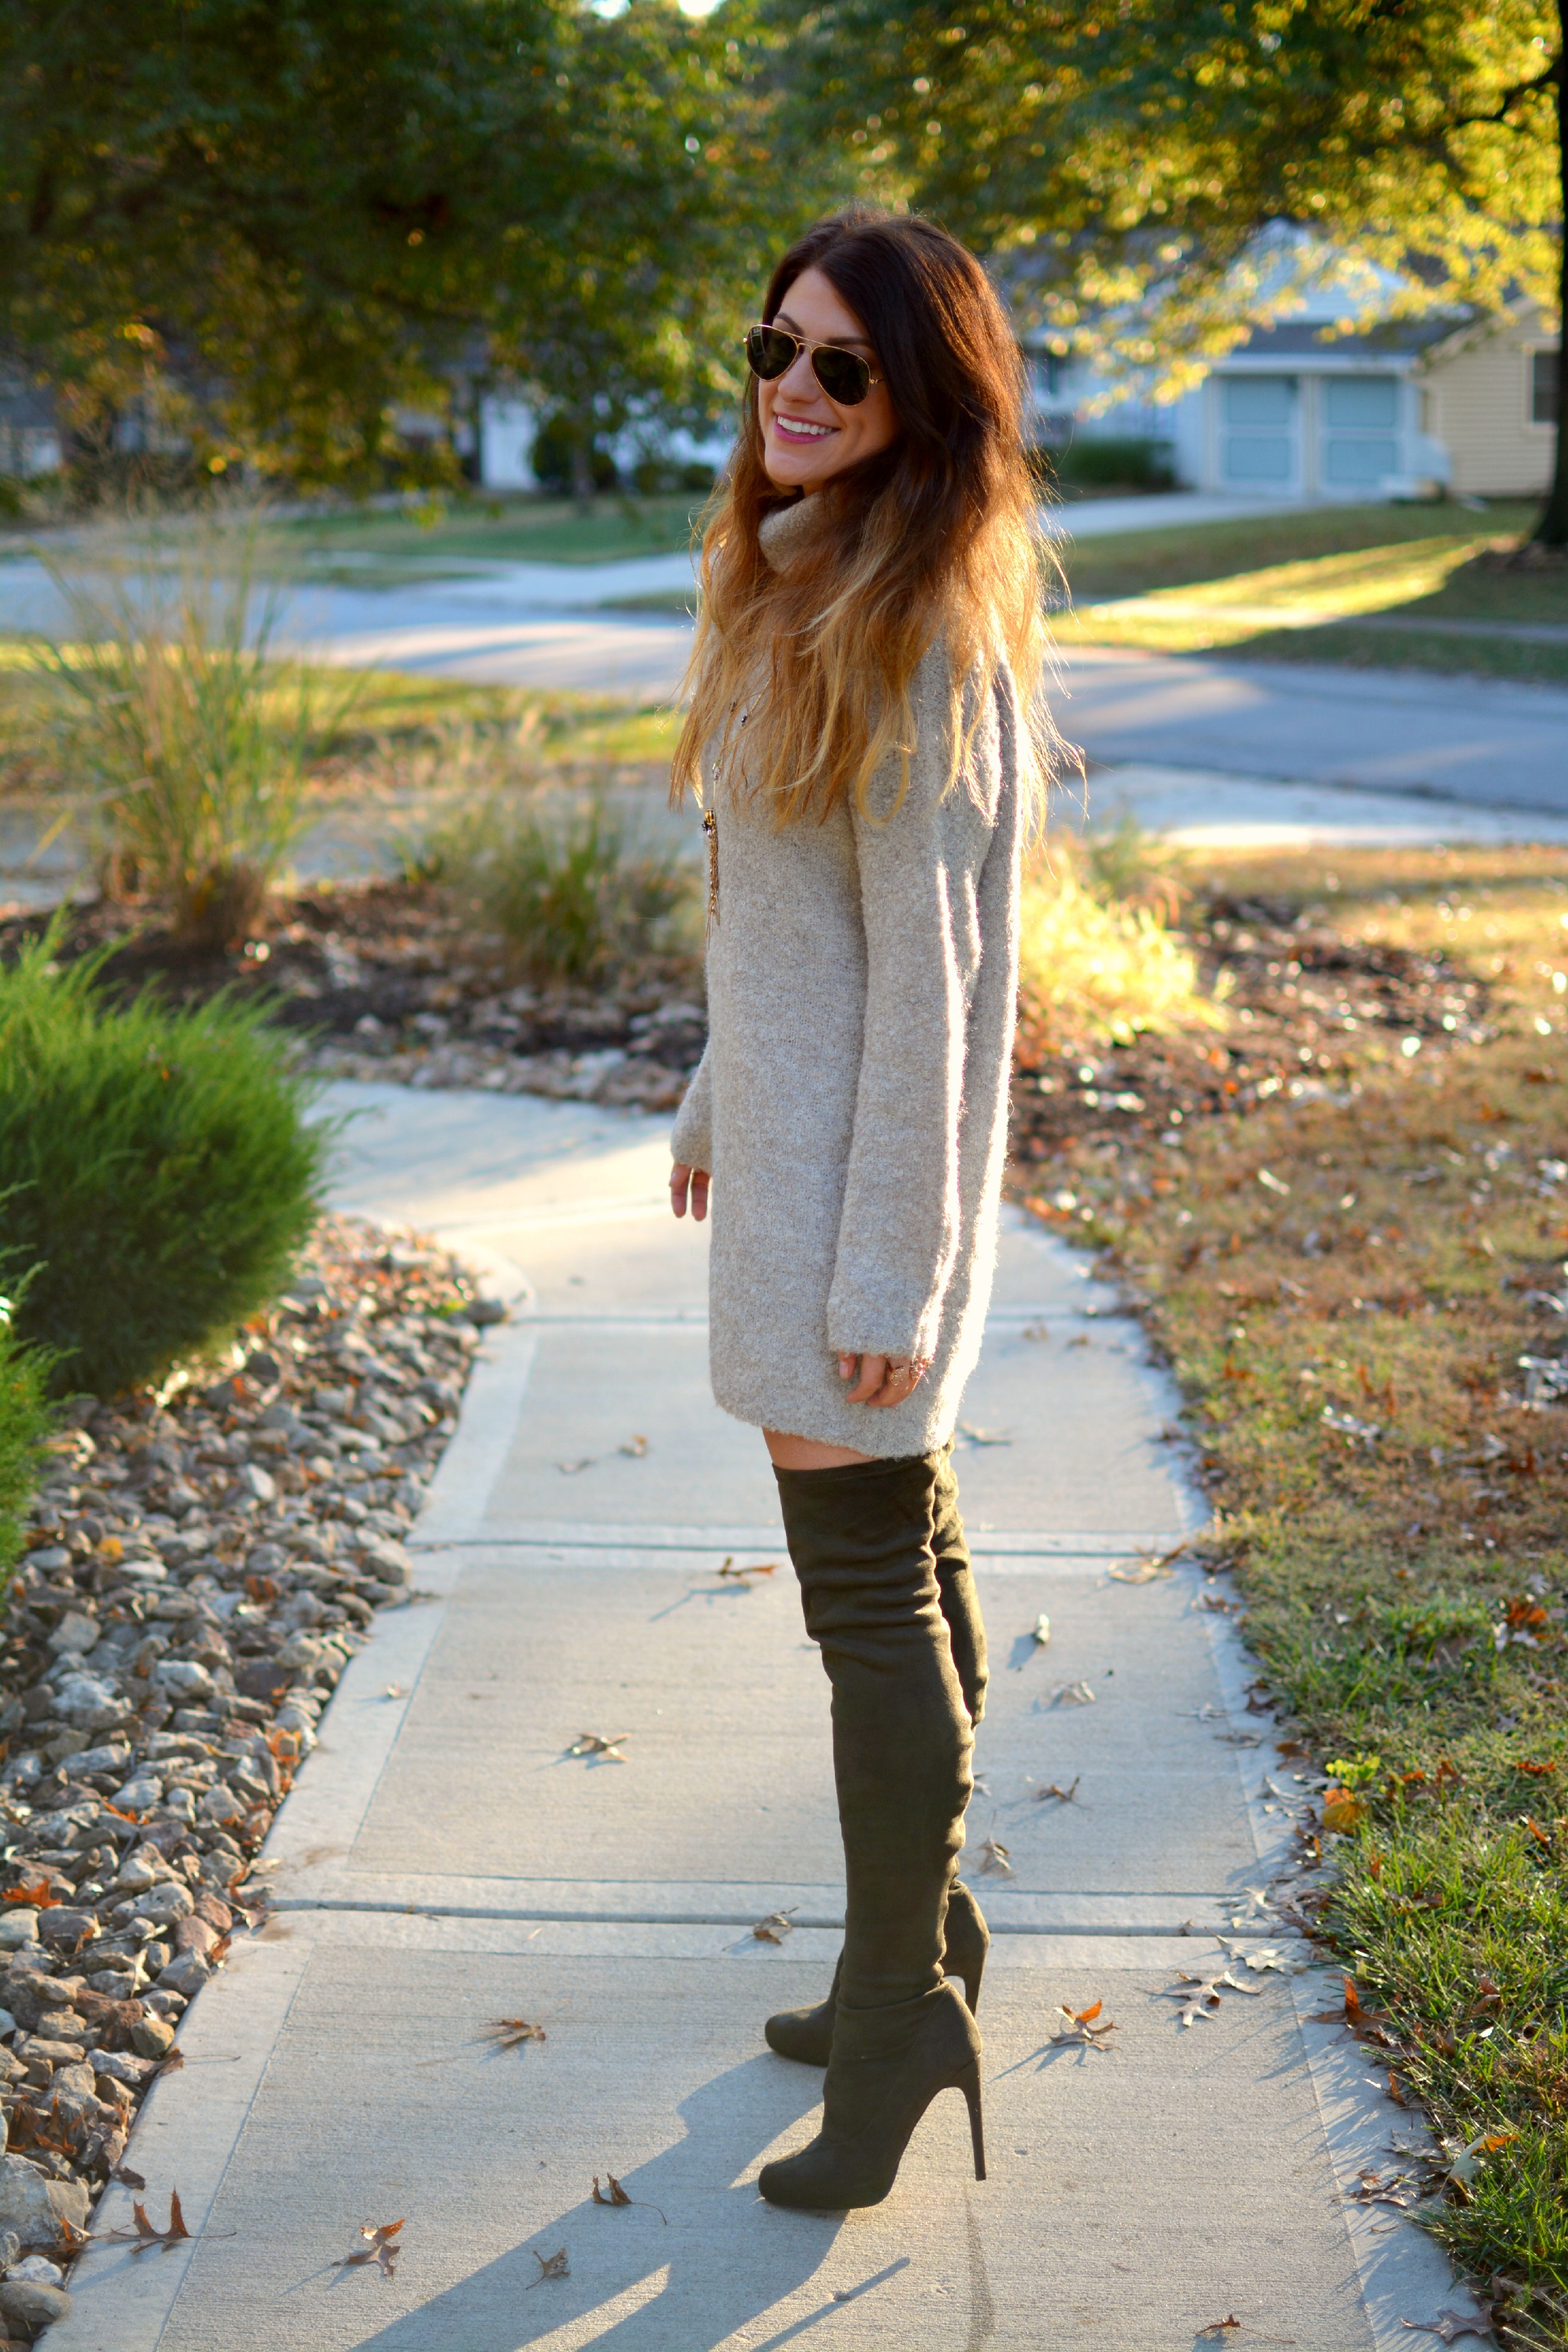 Sweater + Olive Green Boots. | Le Stylo Rouge